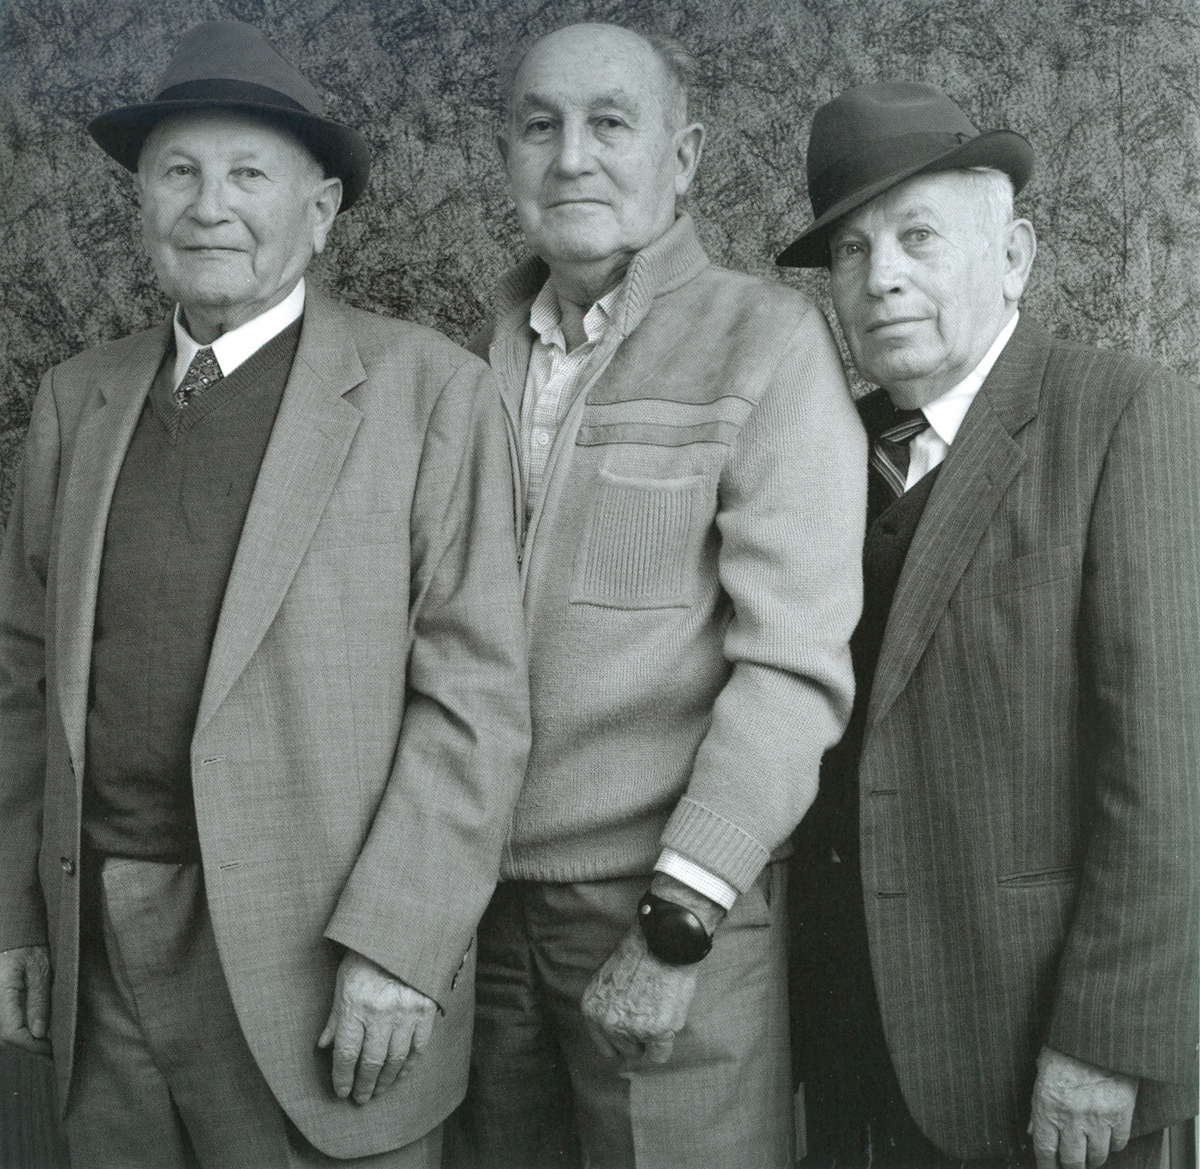 Three Brothers, 1992 by Vardi Kahana Courtesy Andrea Meislin Gallery